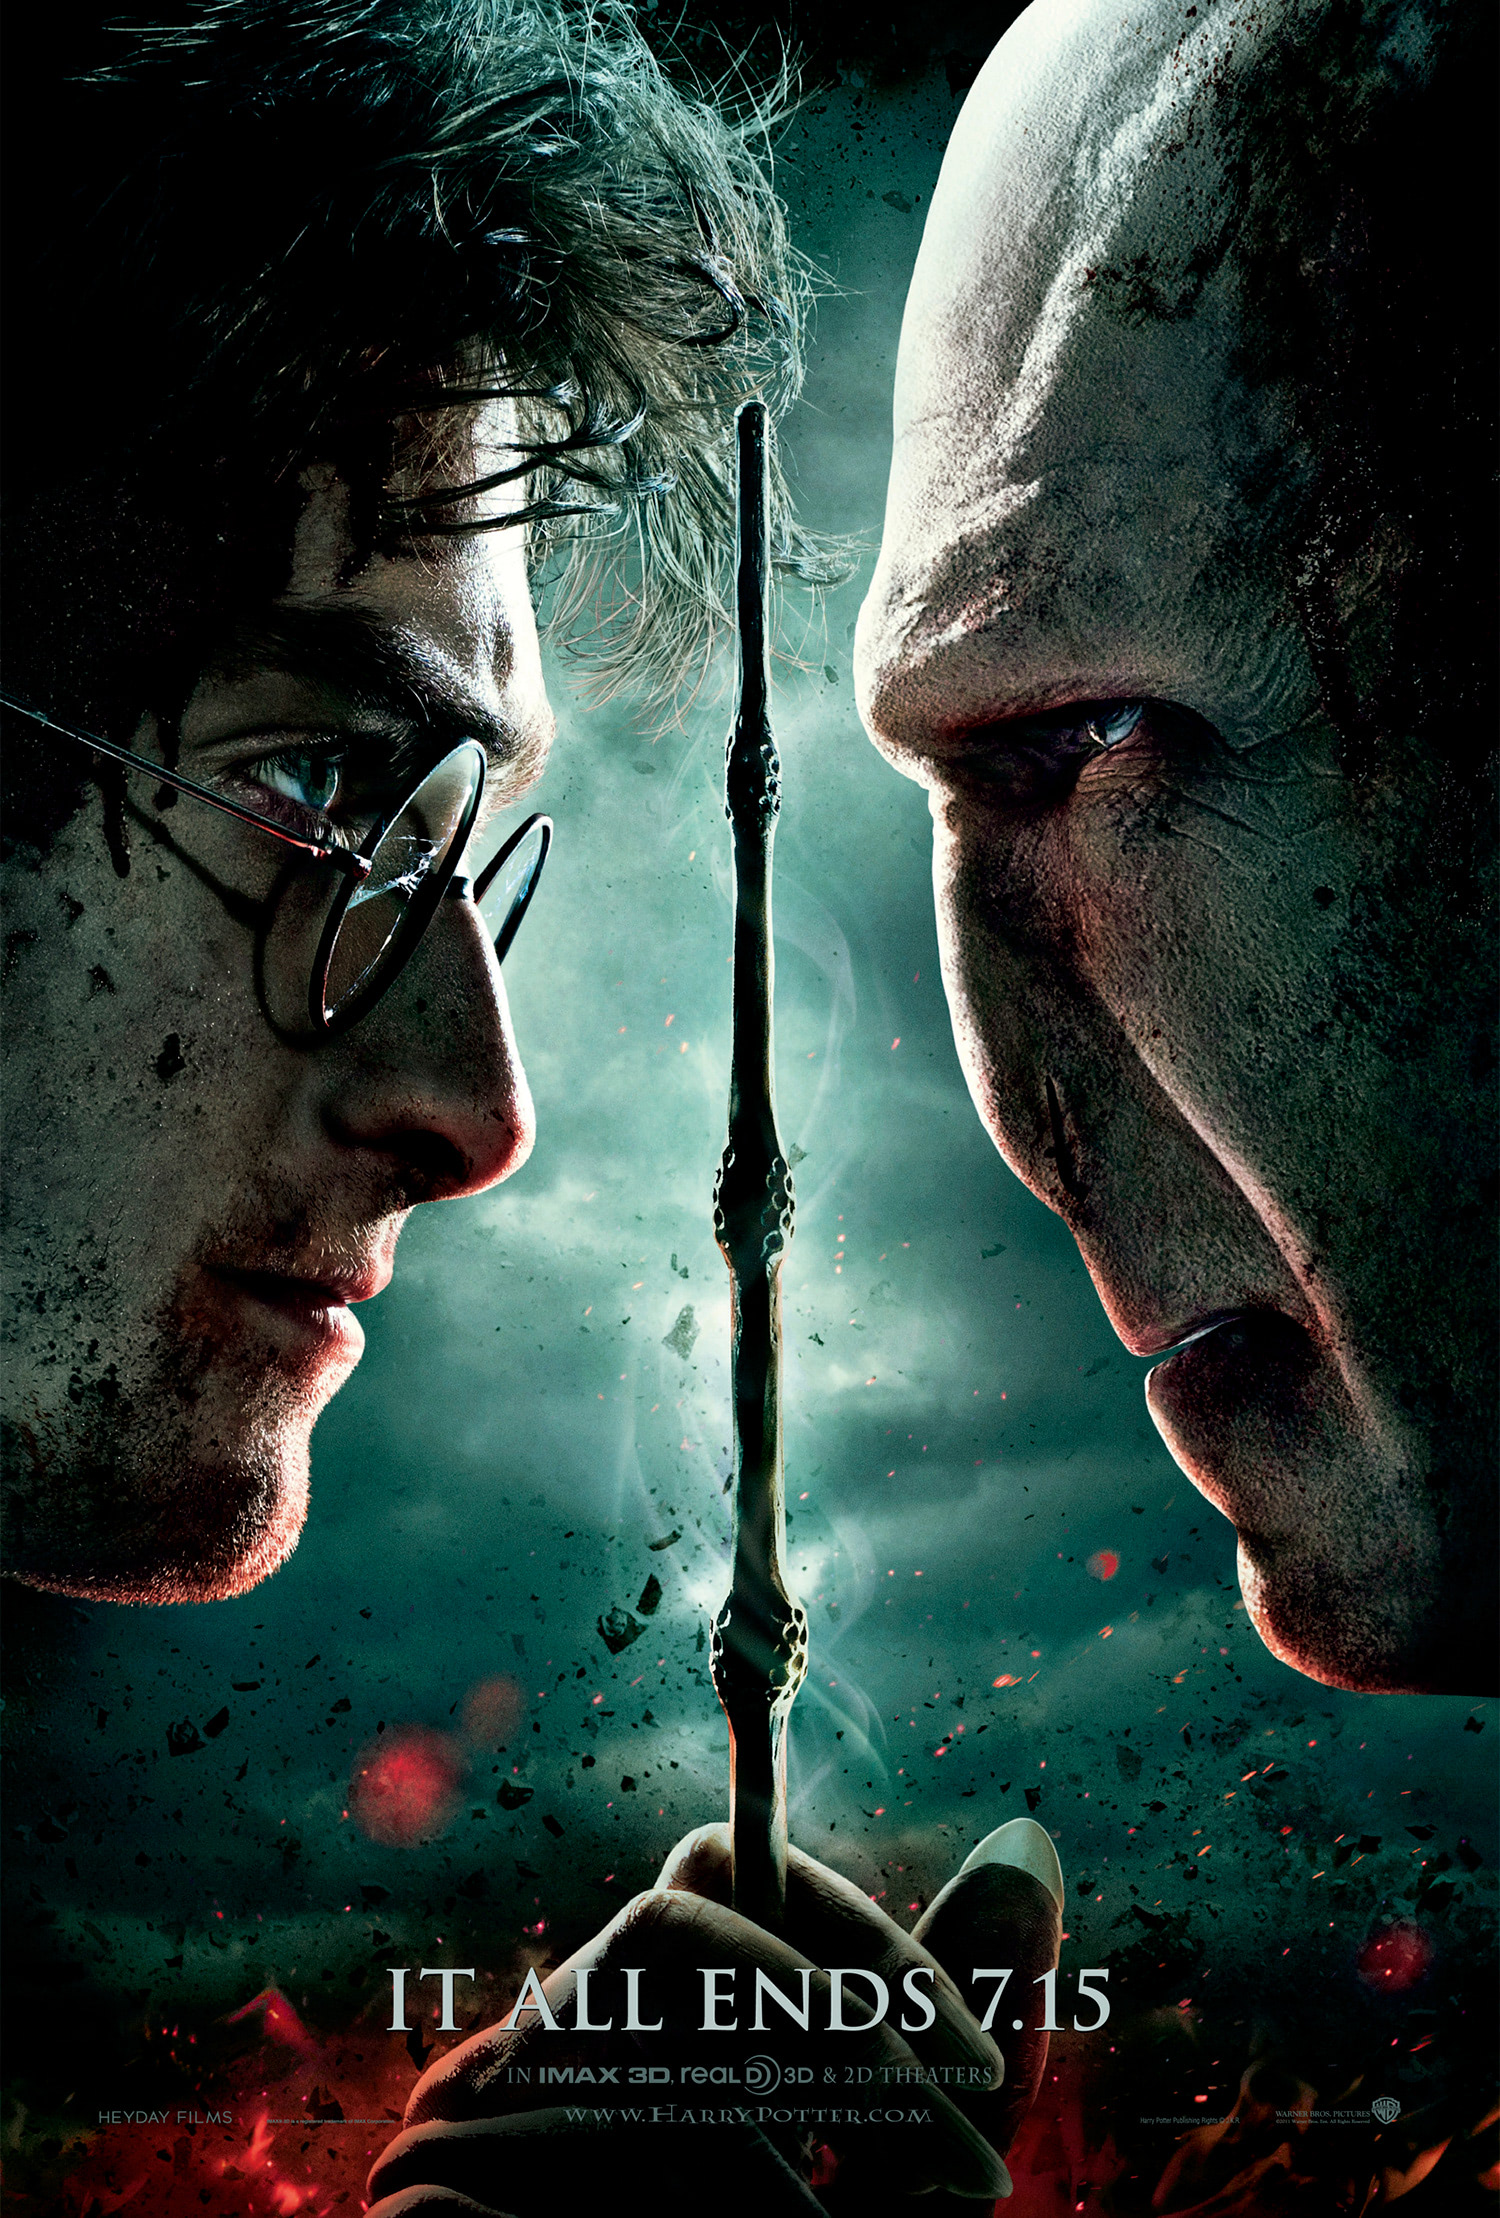 'Deathly Hallows: Part 2' theatrical poster